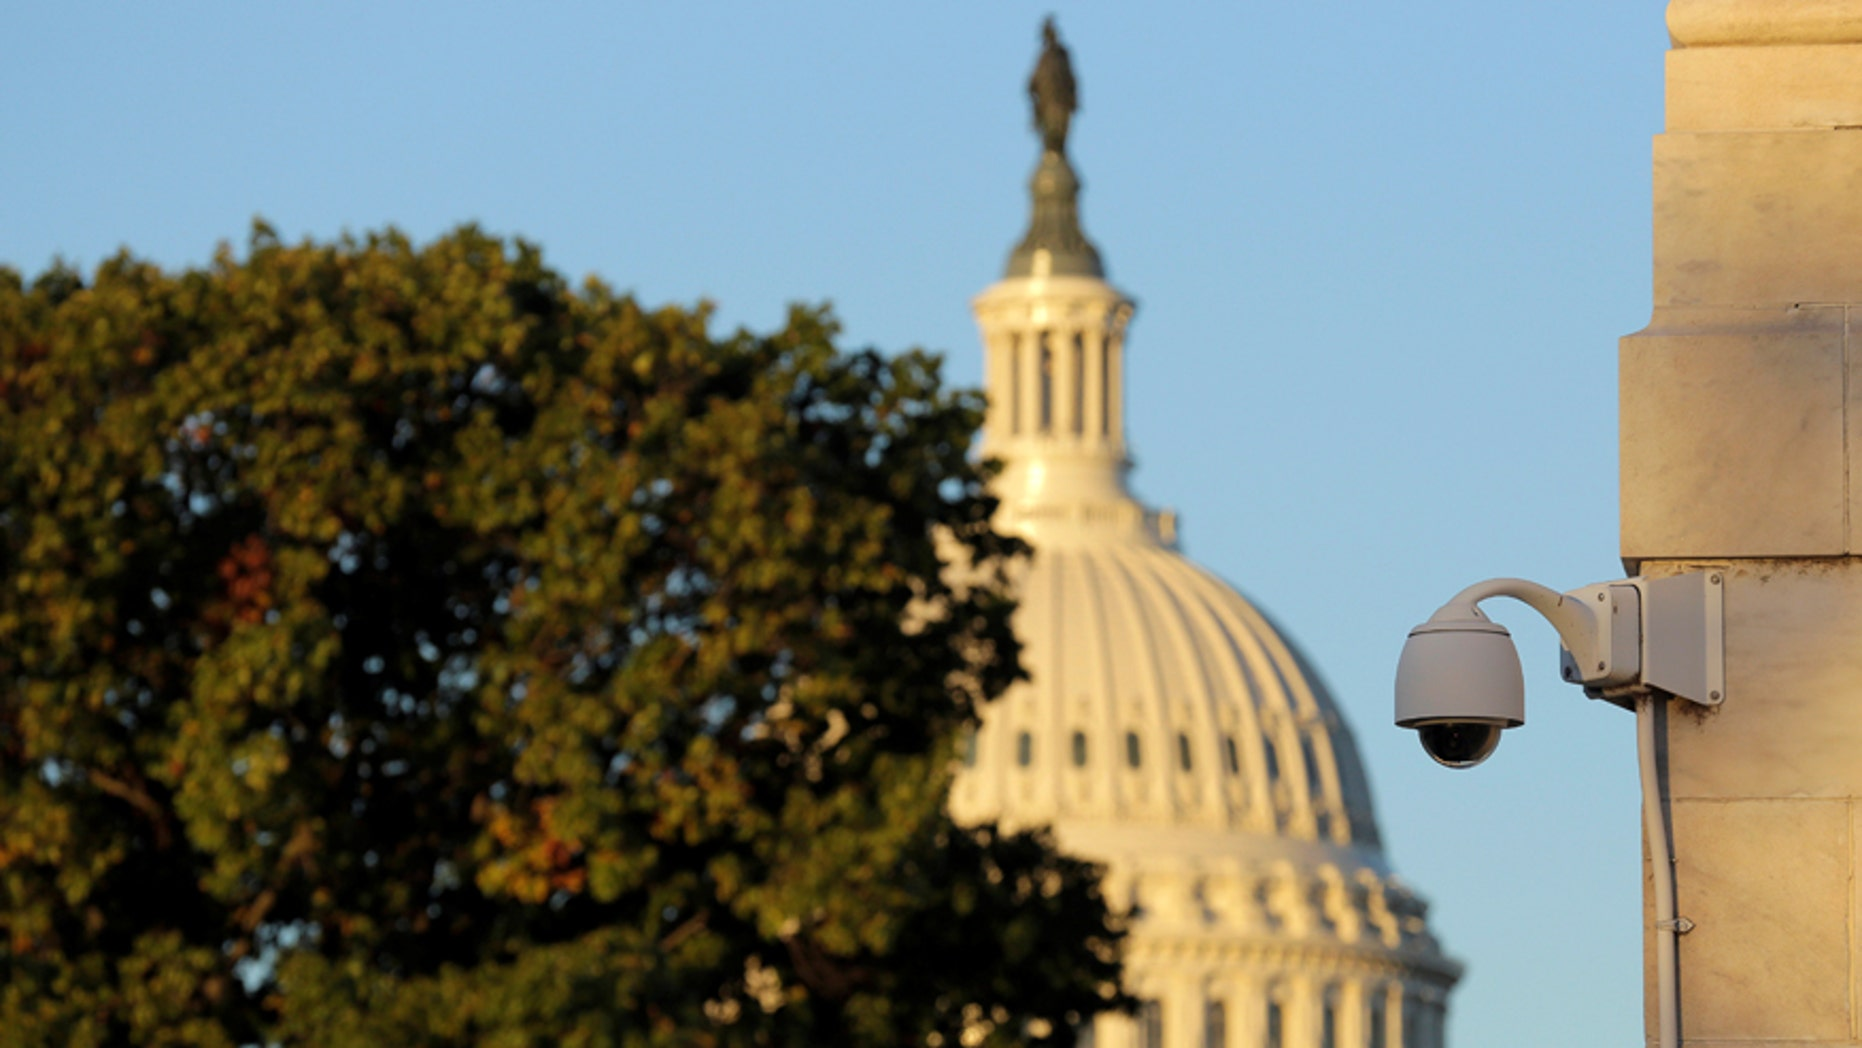 A security camera hangs near the U.S. Capitol in Washington, U.S., Nov. 7, 2016. (REUTERS/Joshua Roberts)